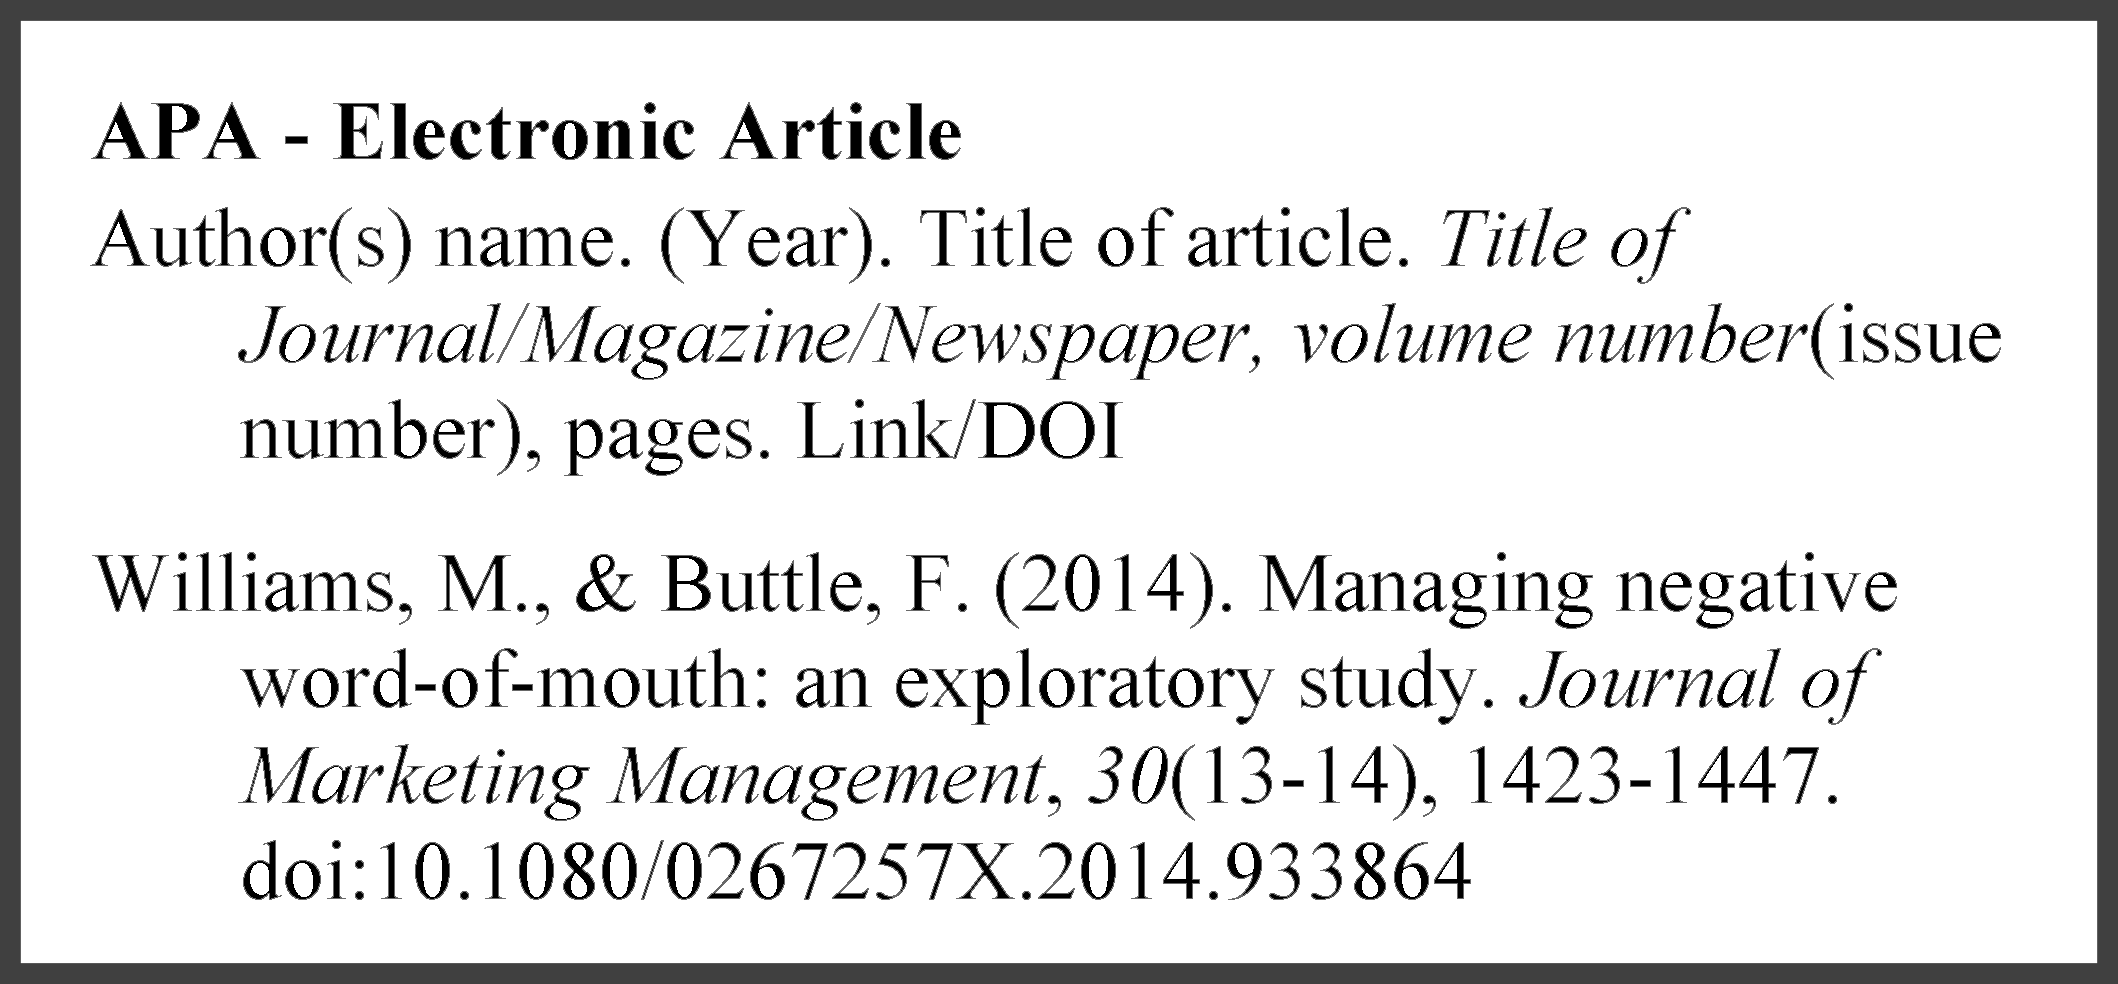 example of an APA electronic article reference